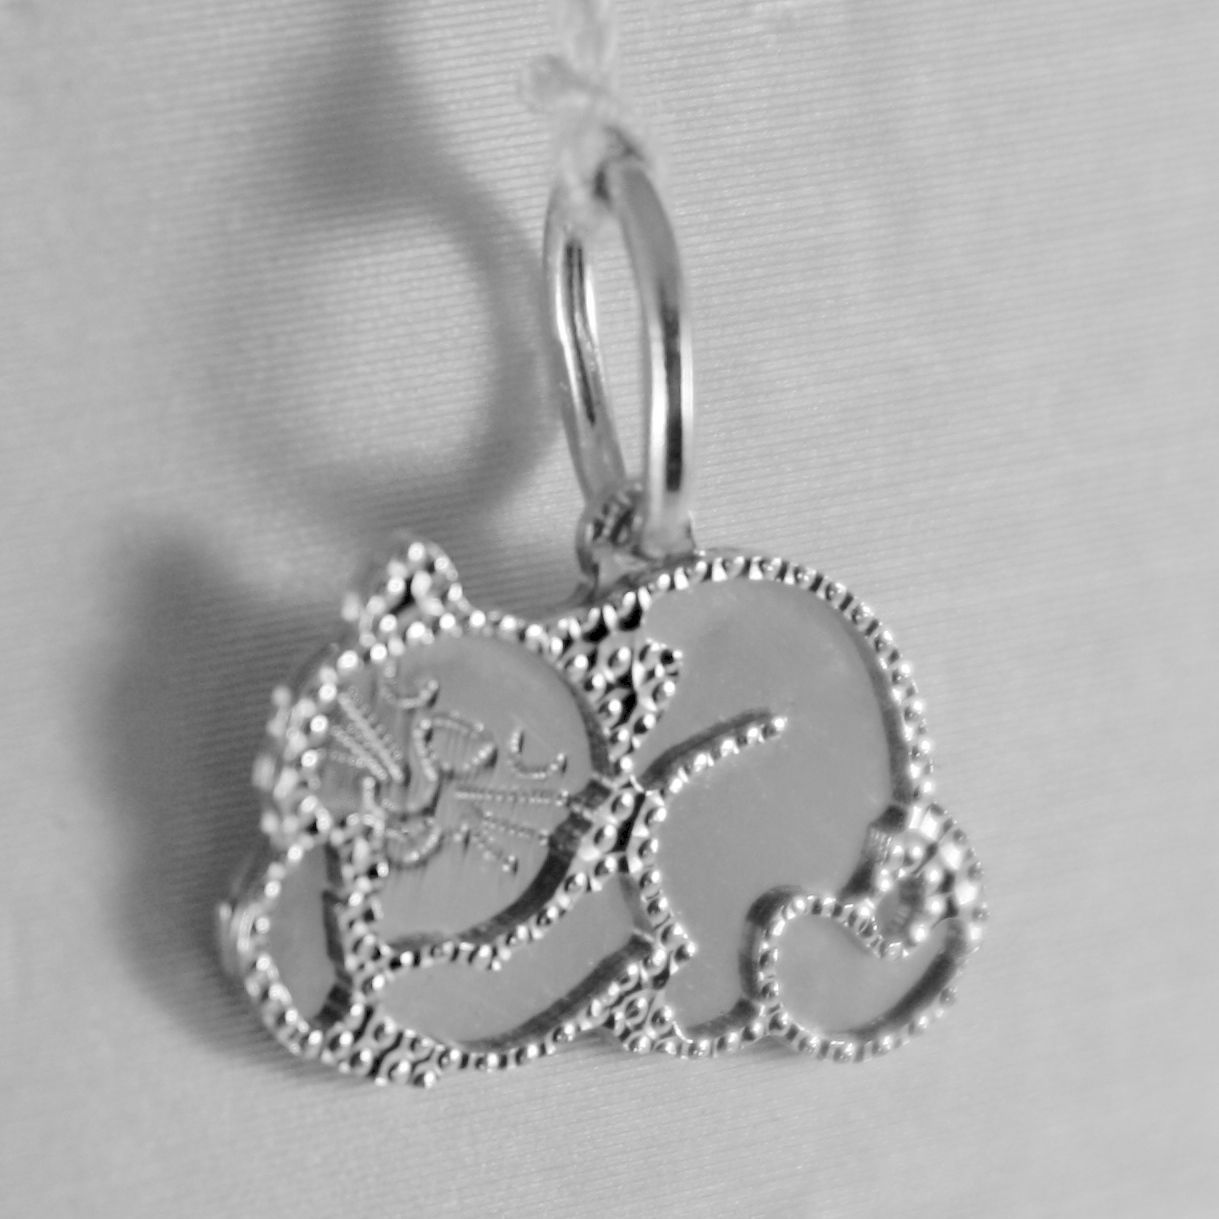 18K WHITE GOLD LITTLE CAT FLAT PENDANT FINELY WORKED, MADE IN ITALY